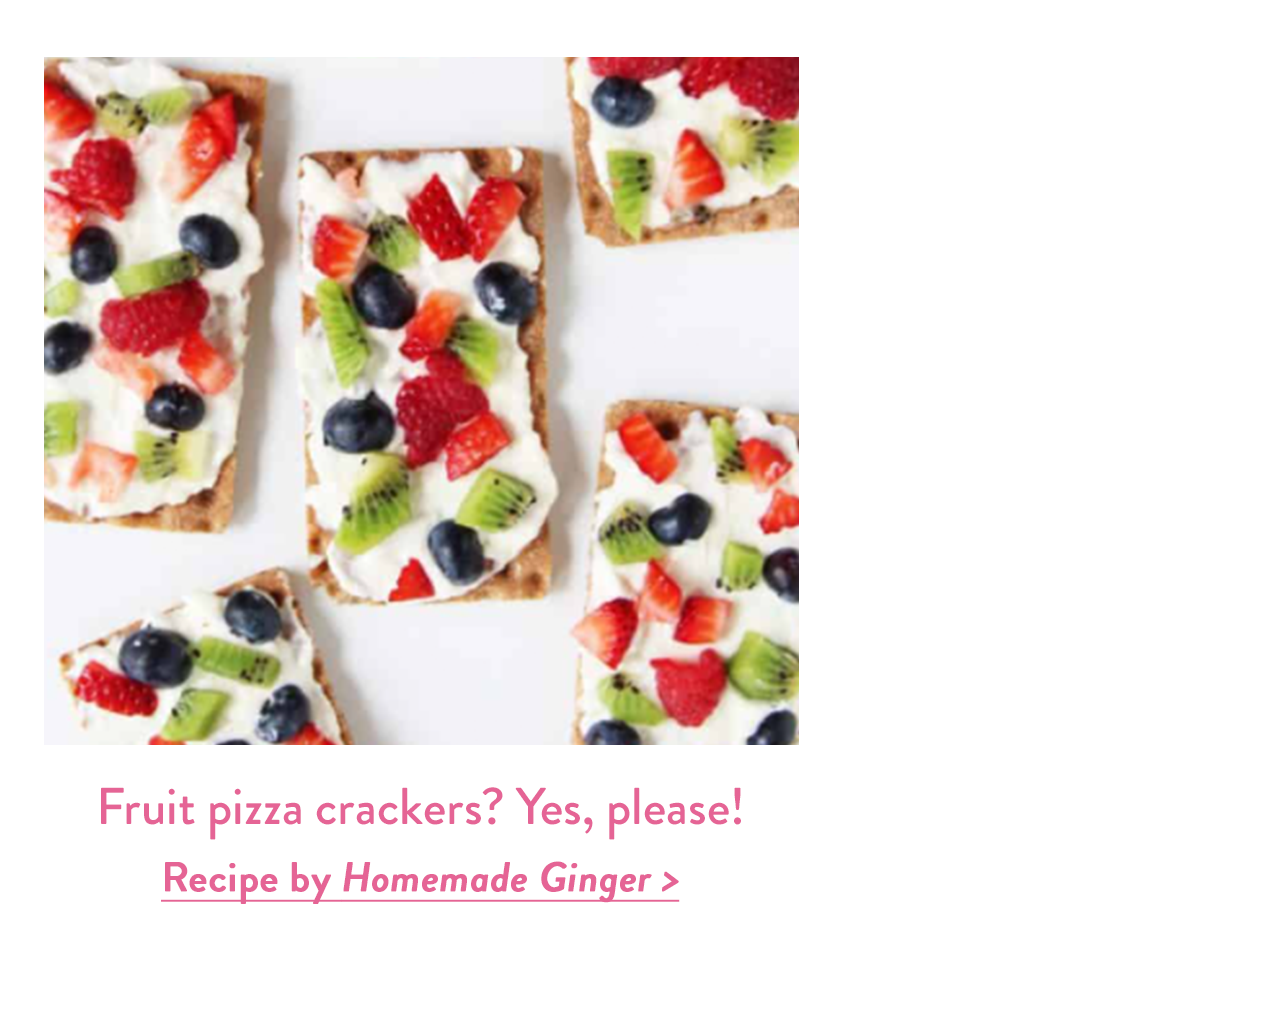 Fruit pizza crackers? Yes, please!